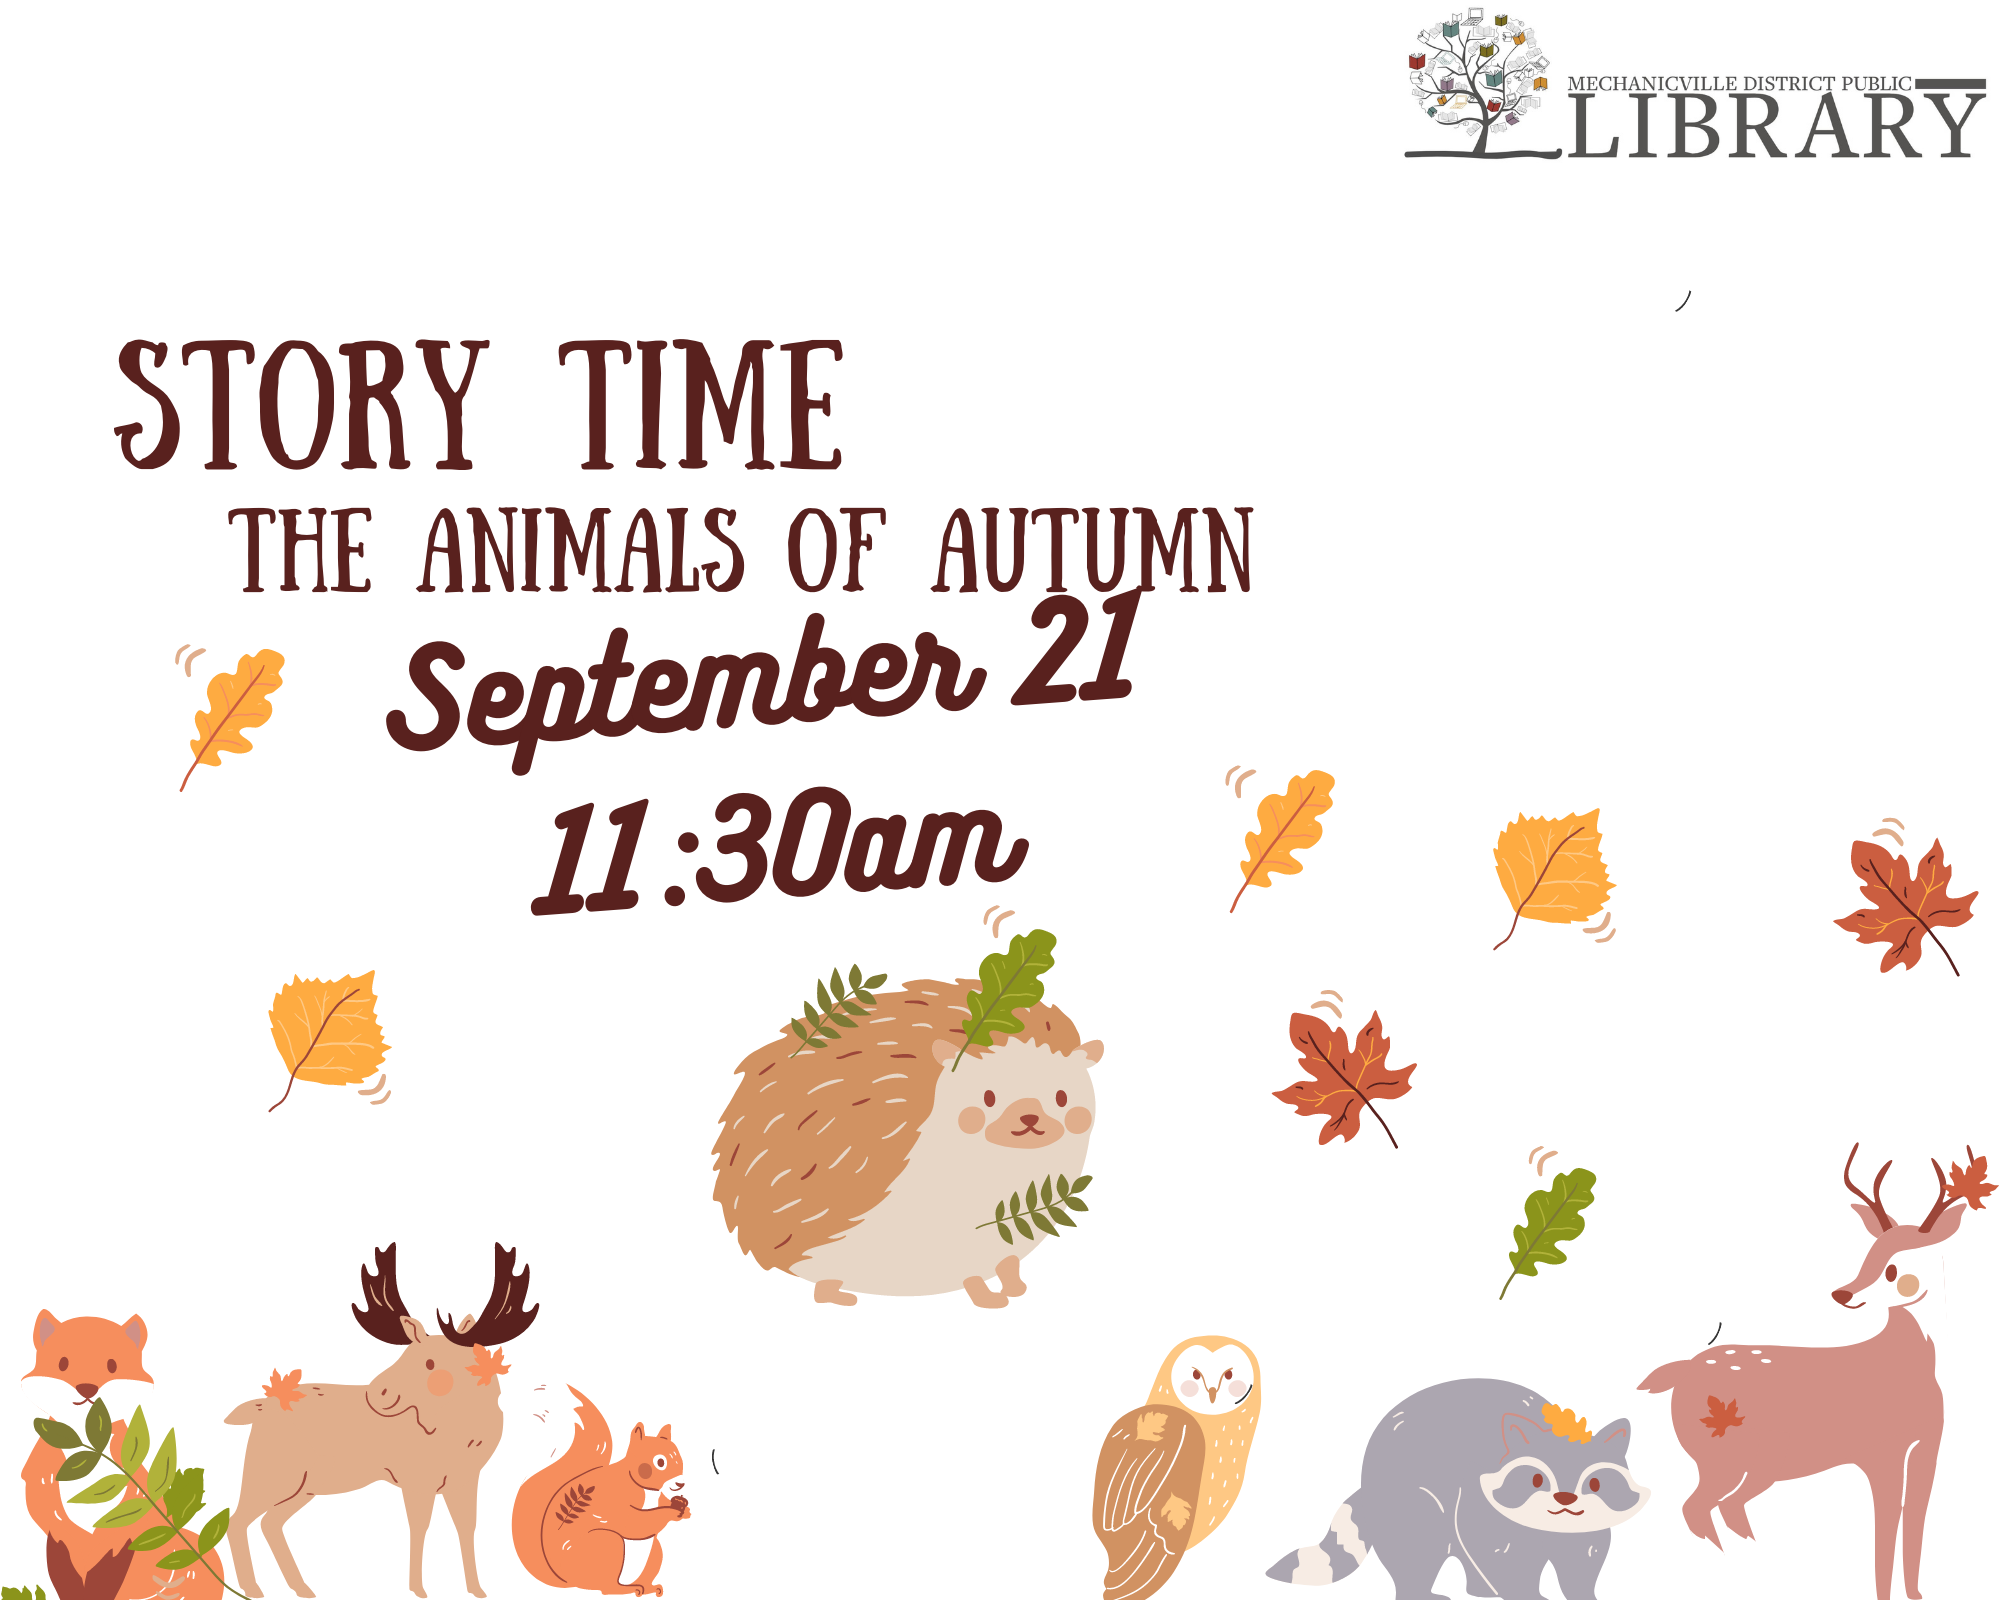 Story Time: The Animals of Autumn